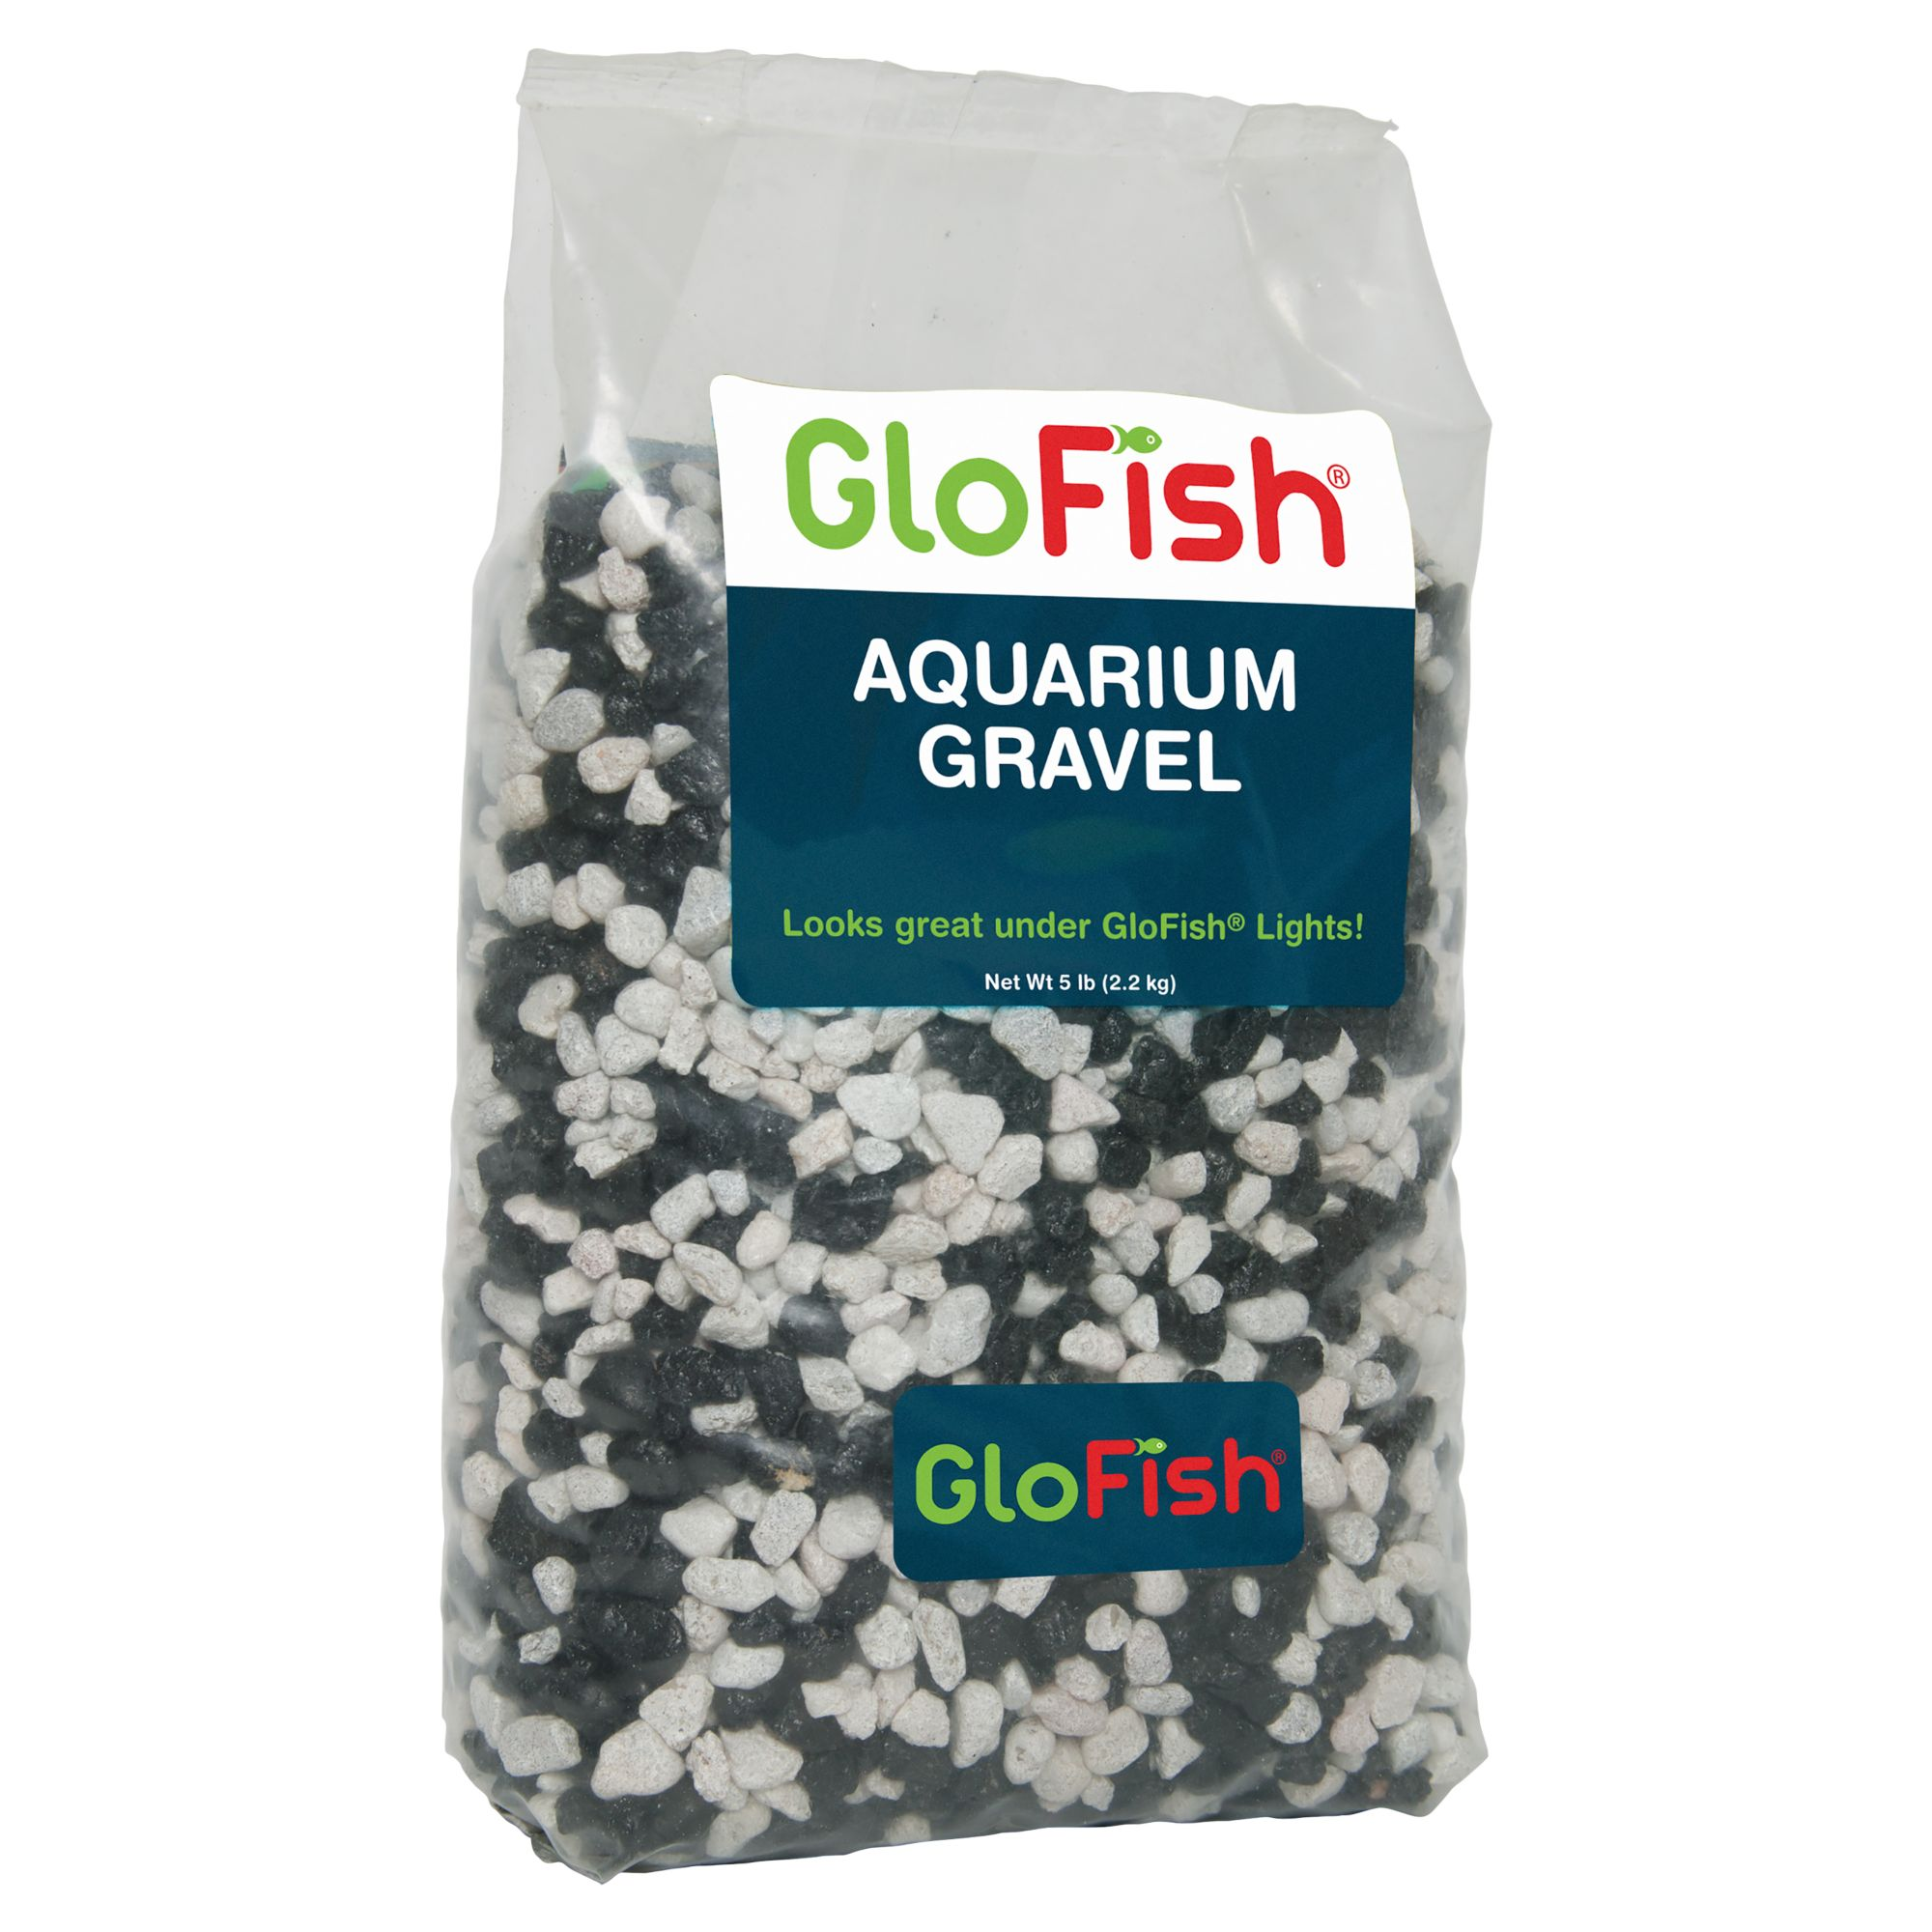 Glofish Aquarium Gravel Size 5 Lb White Black